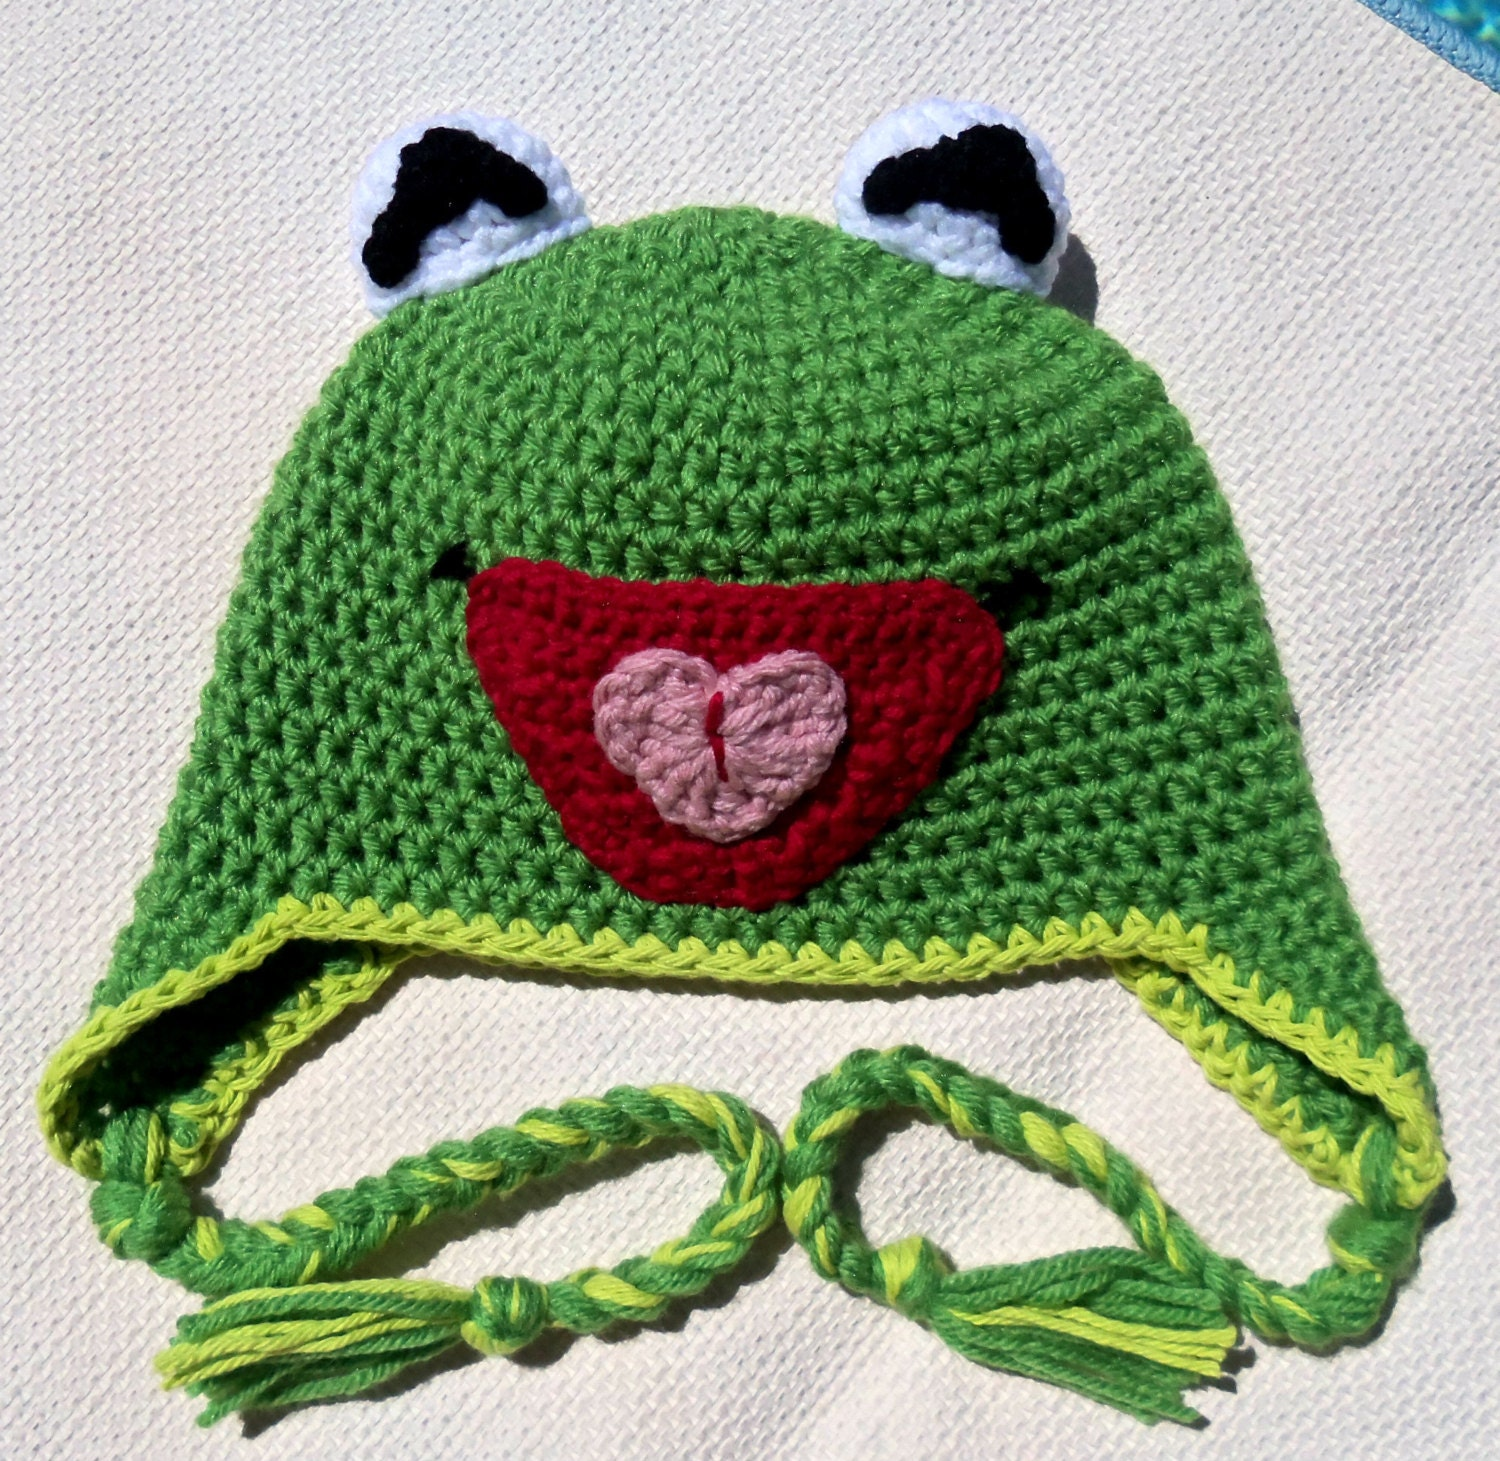 kermit the frog crochet hat hats womenhats for by Handmade75